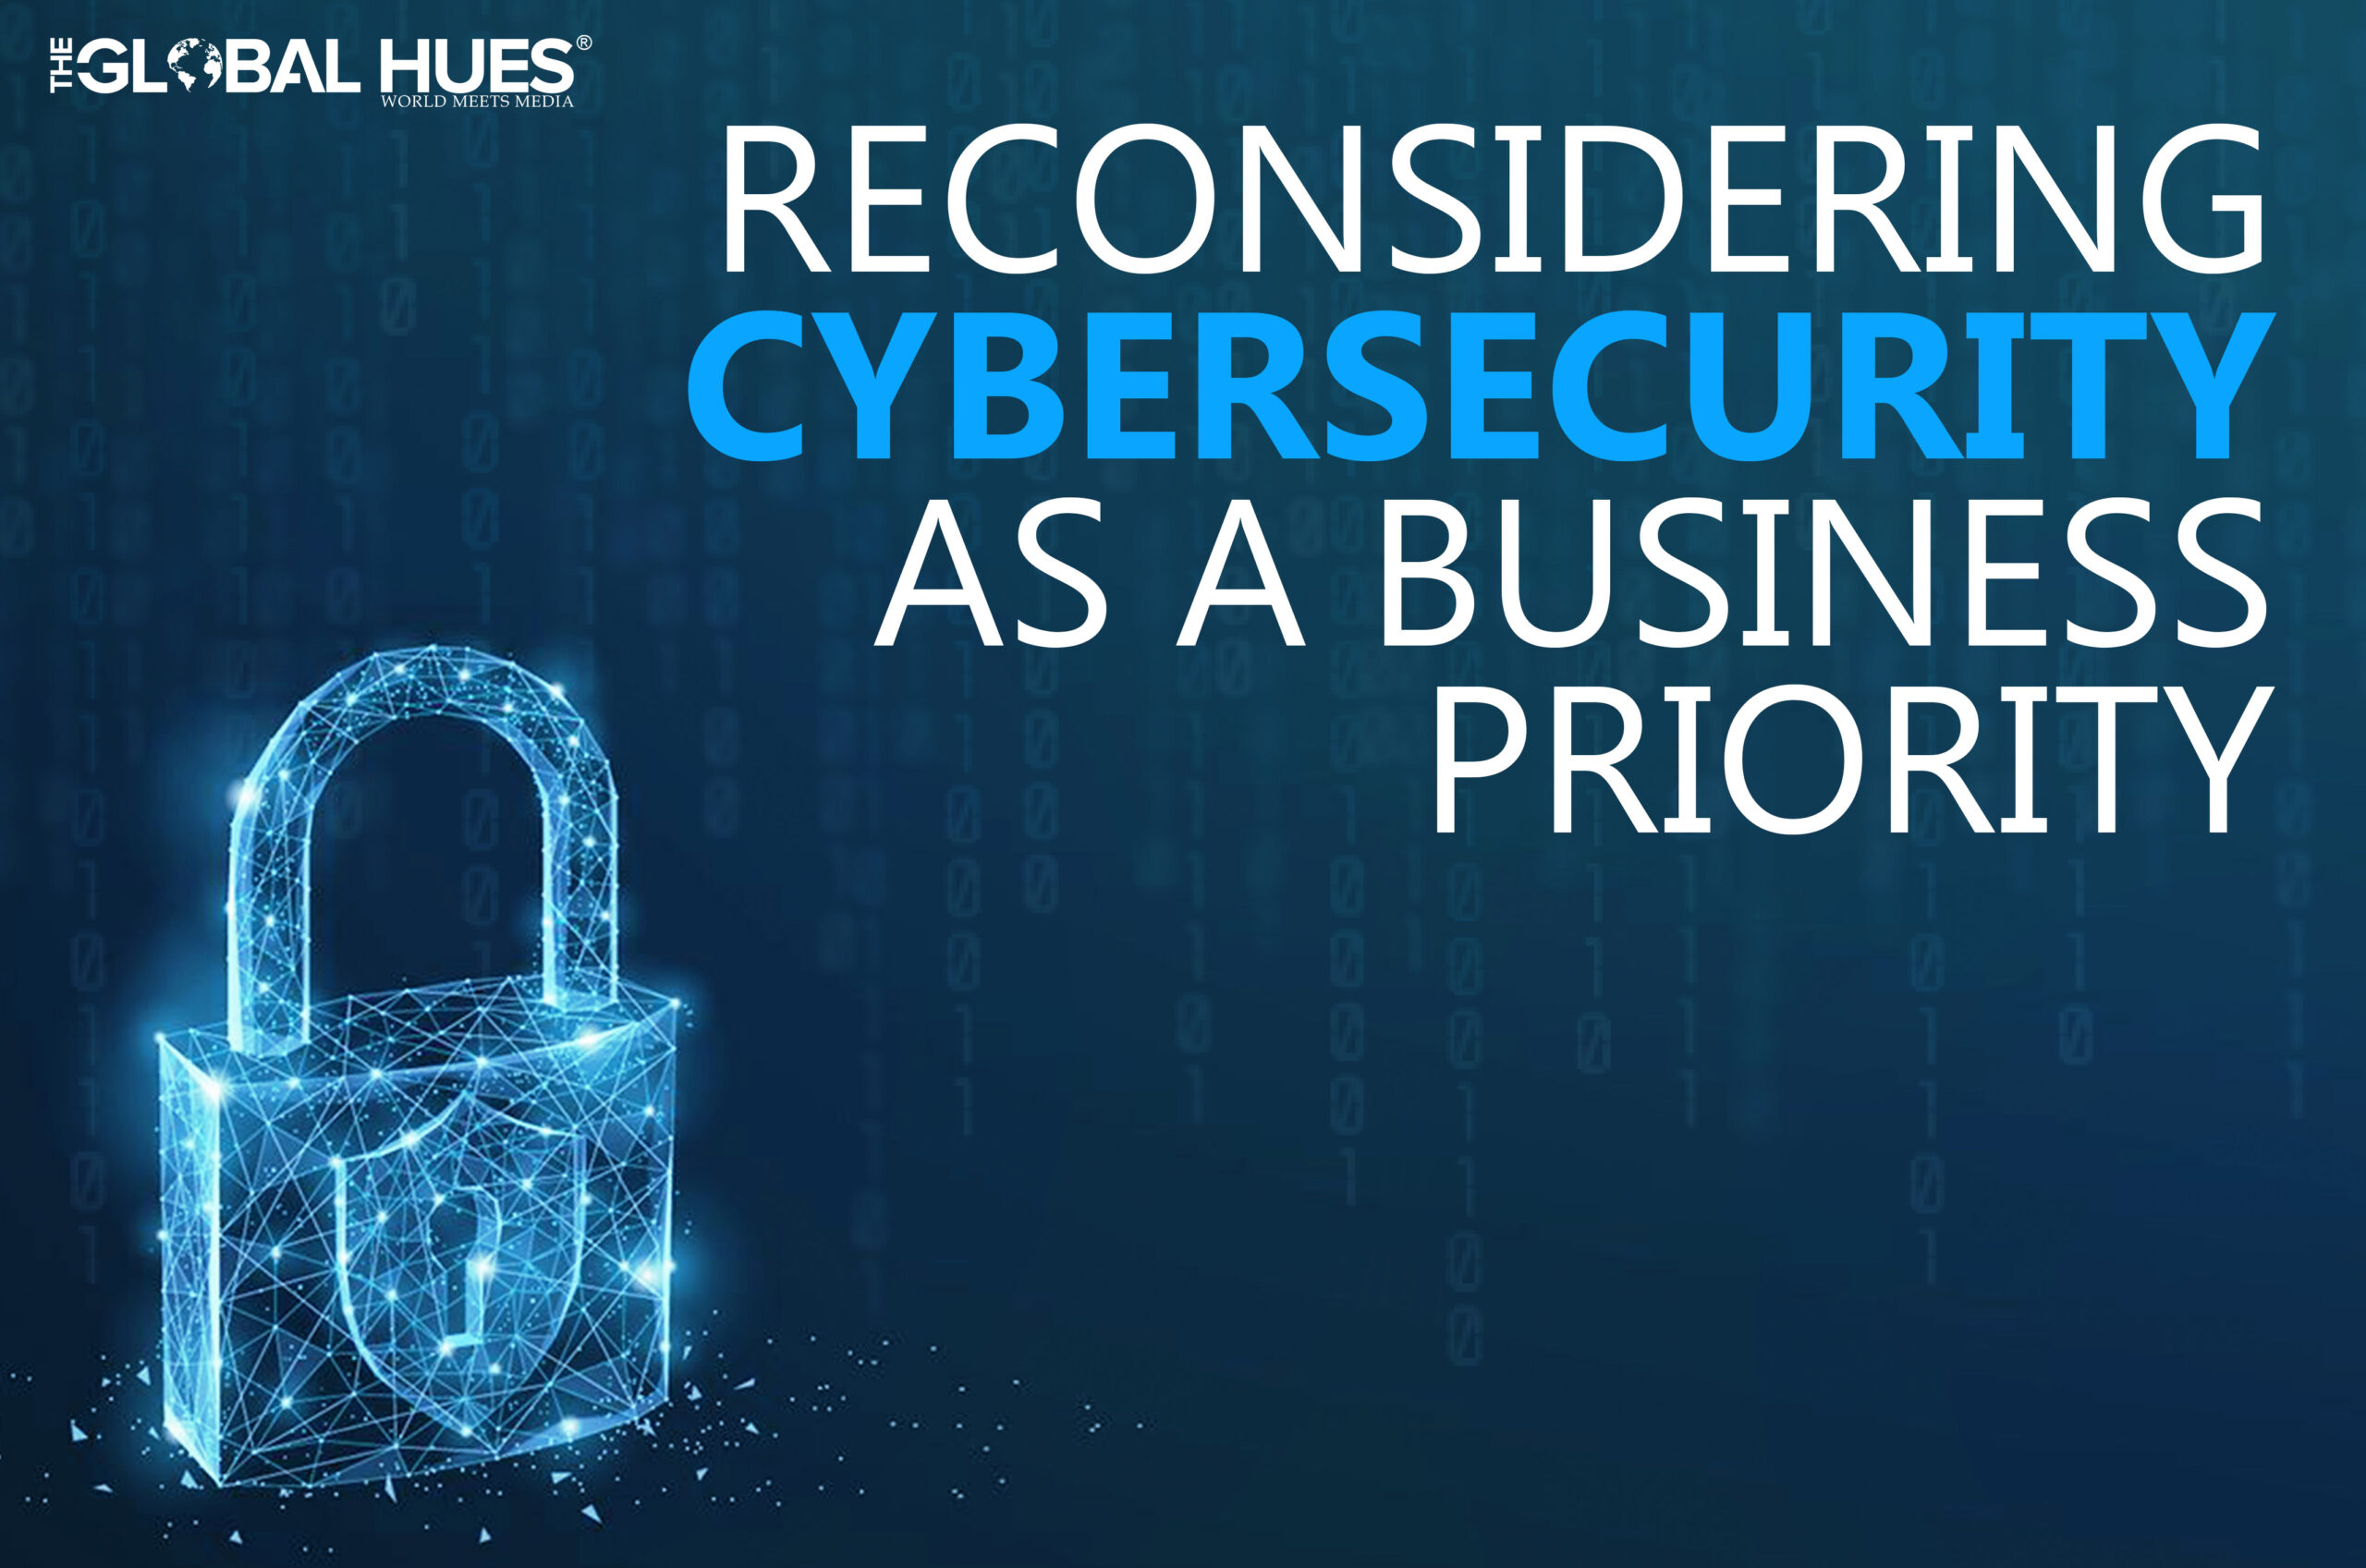 Reconsidering-Cybersecurity